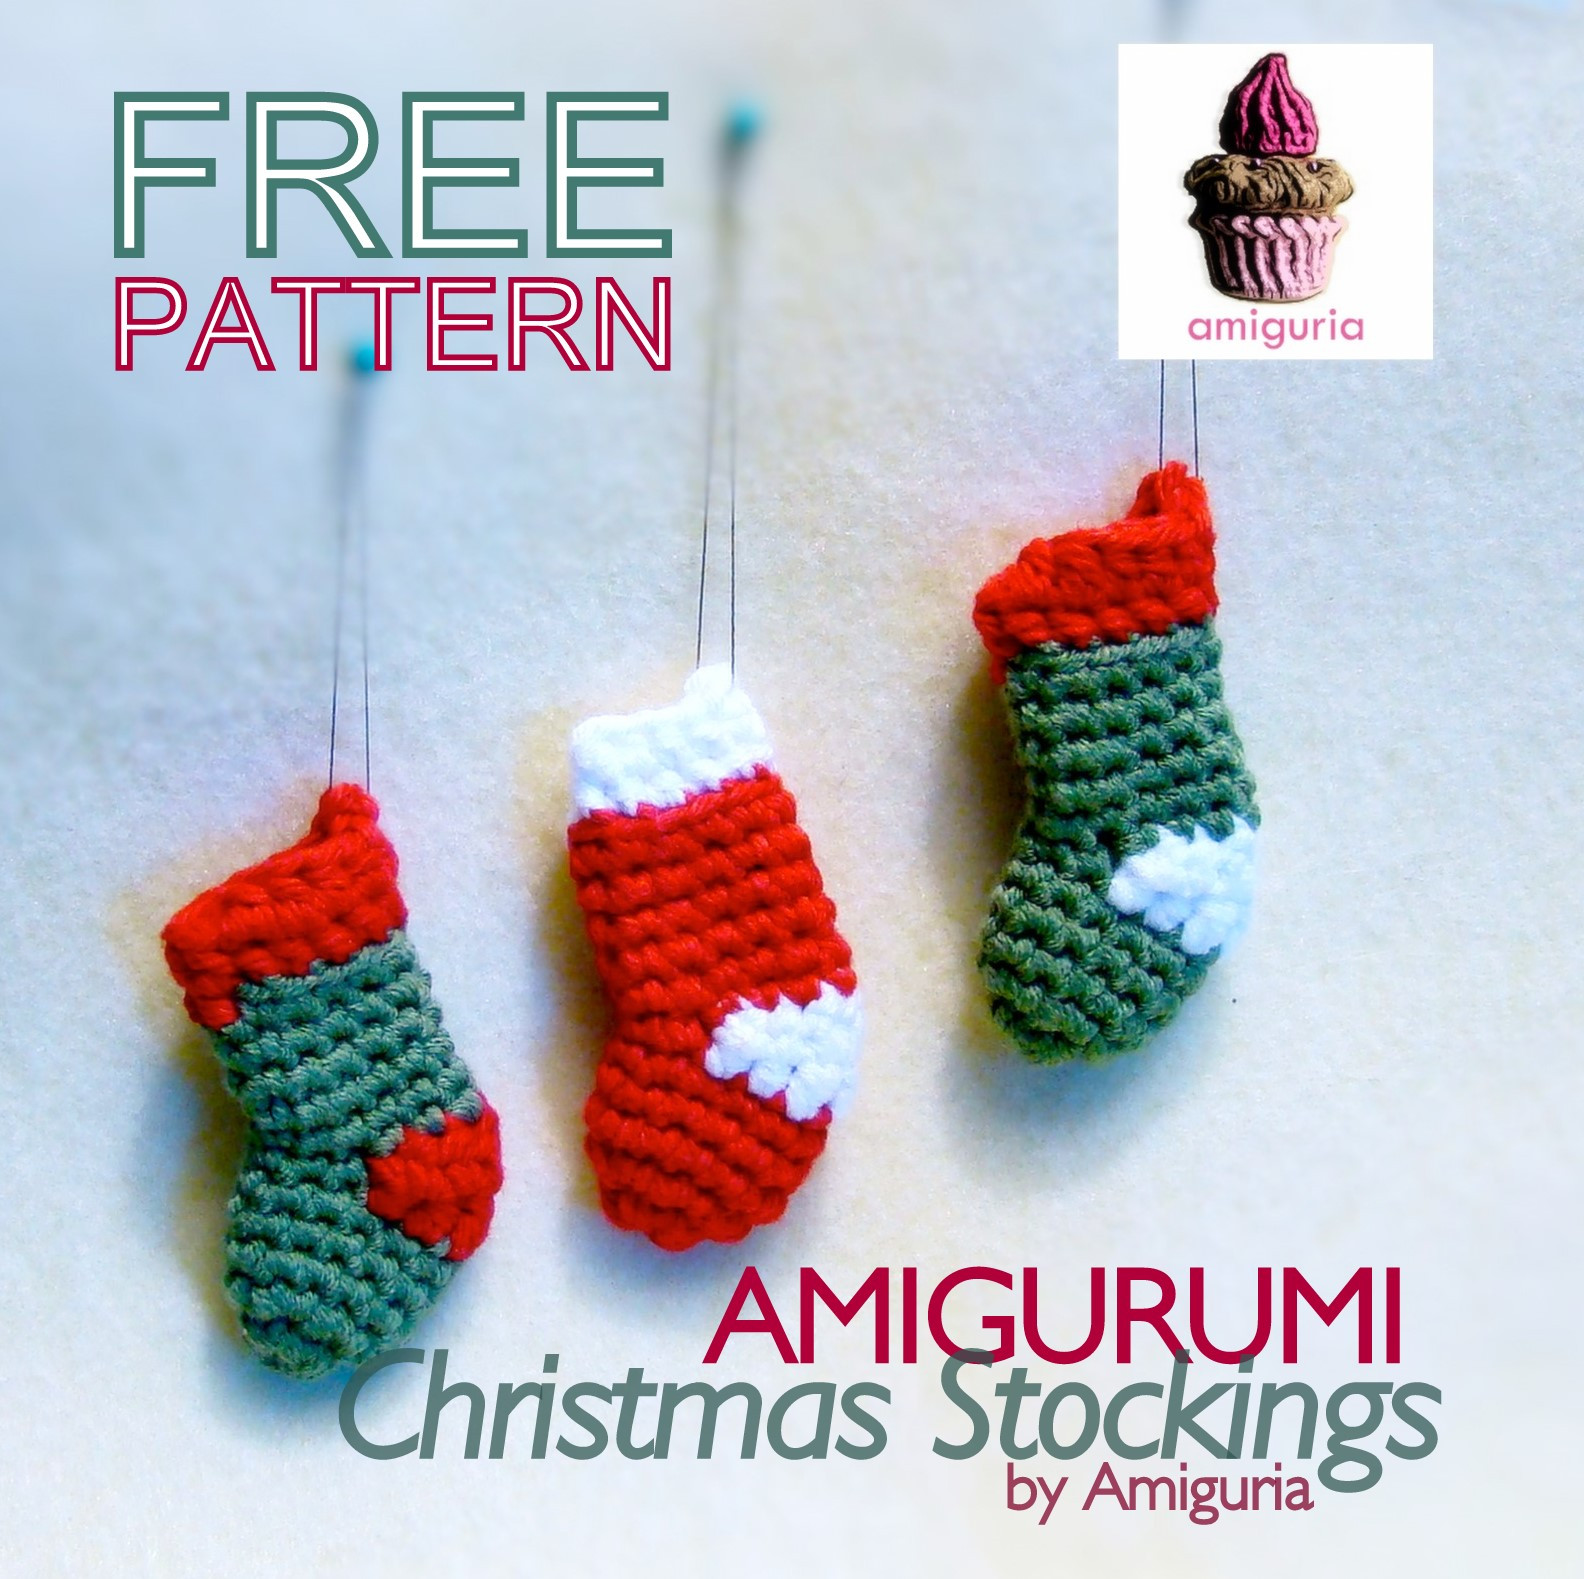 Free Crochet Christmas Stocking Patterns Awesome Amiguria Amigurumi Free Pattern Christmas Stocking Of Top 44 Photos Free Crochet Christmas Stocking Patterns